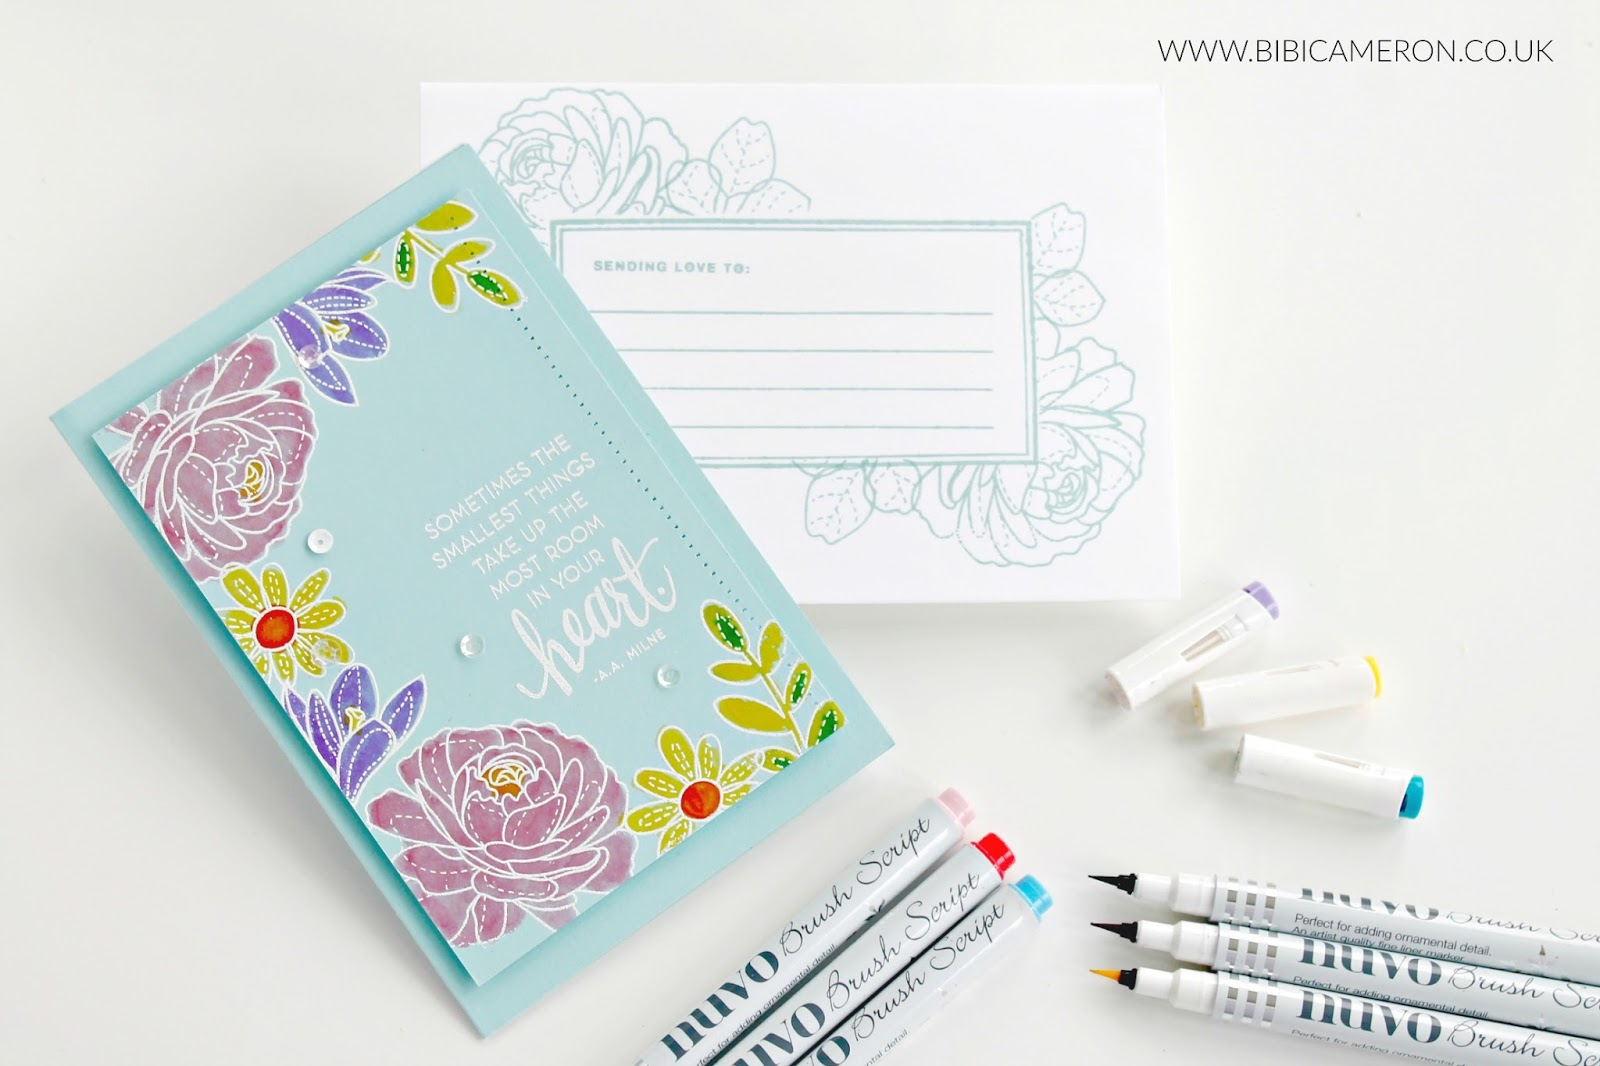 SSS More Spring Flowers Stamp Set  and Nuvo Script Pens